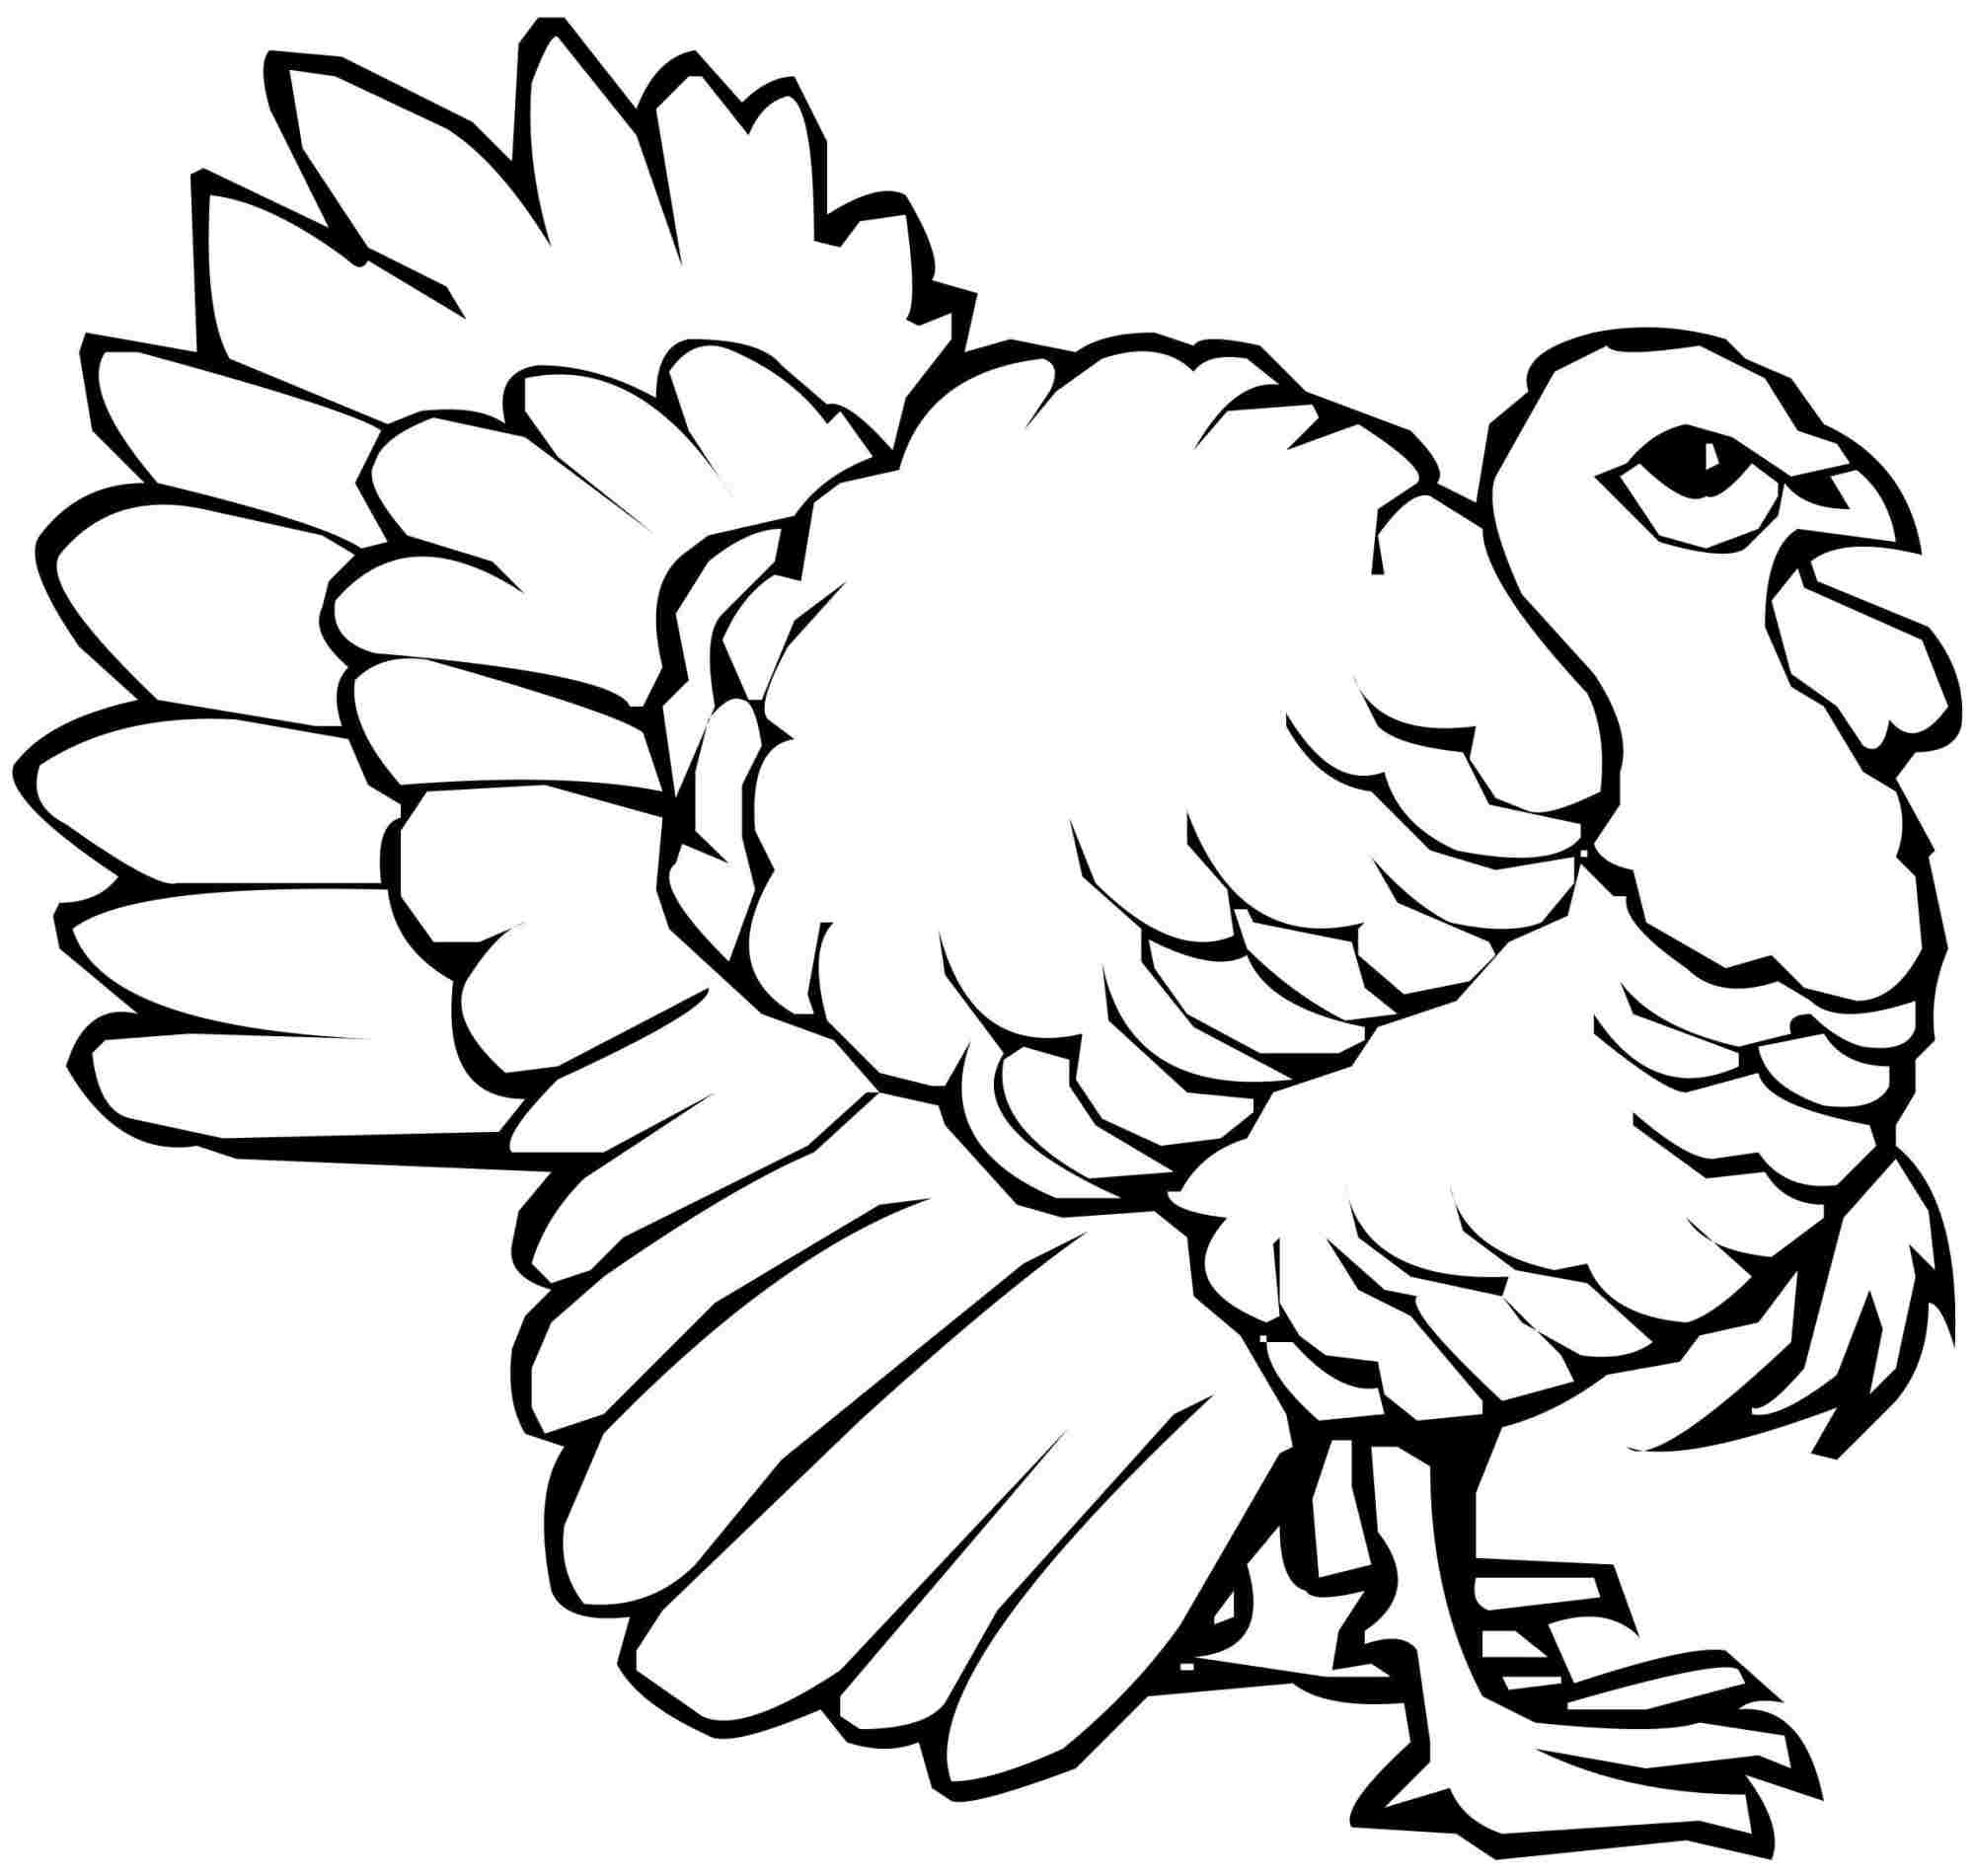 2000x1901 Thanksgiving Feast Coloring Pages Vitlt Gallery